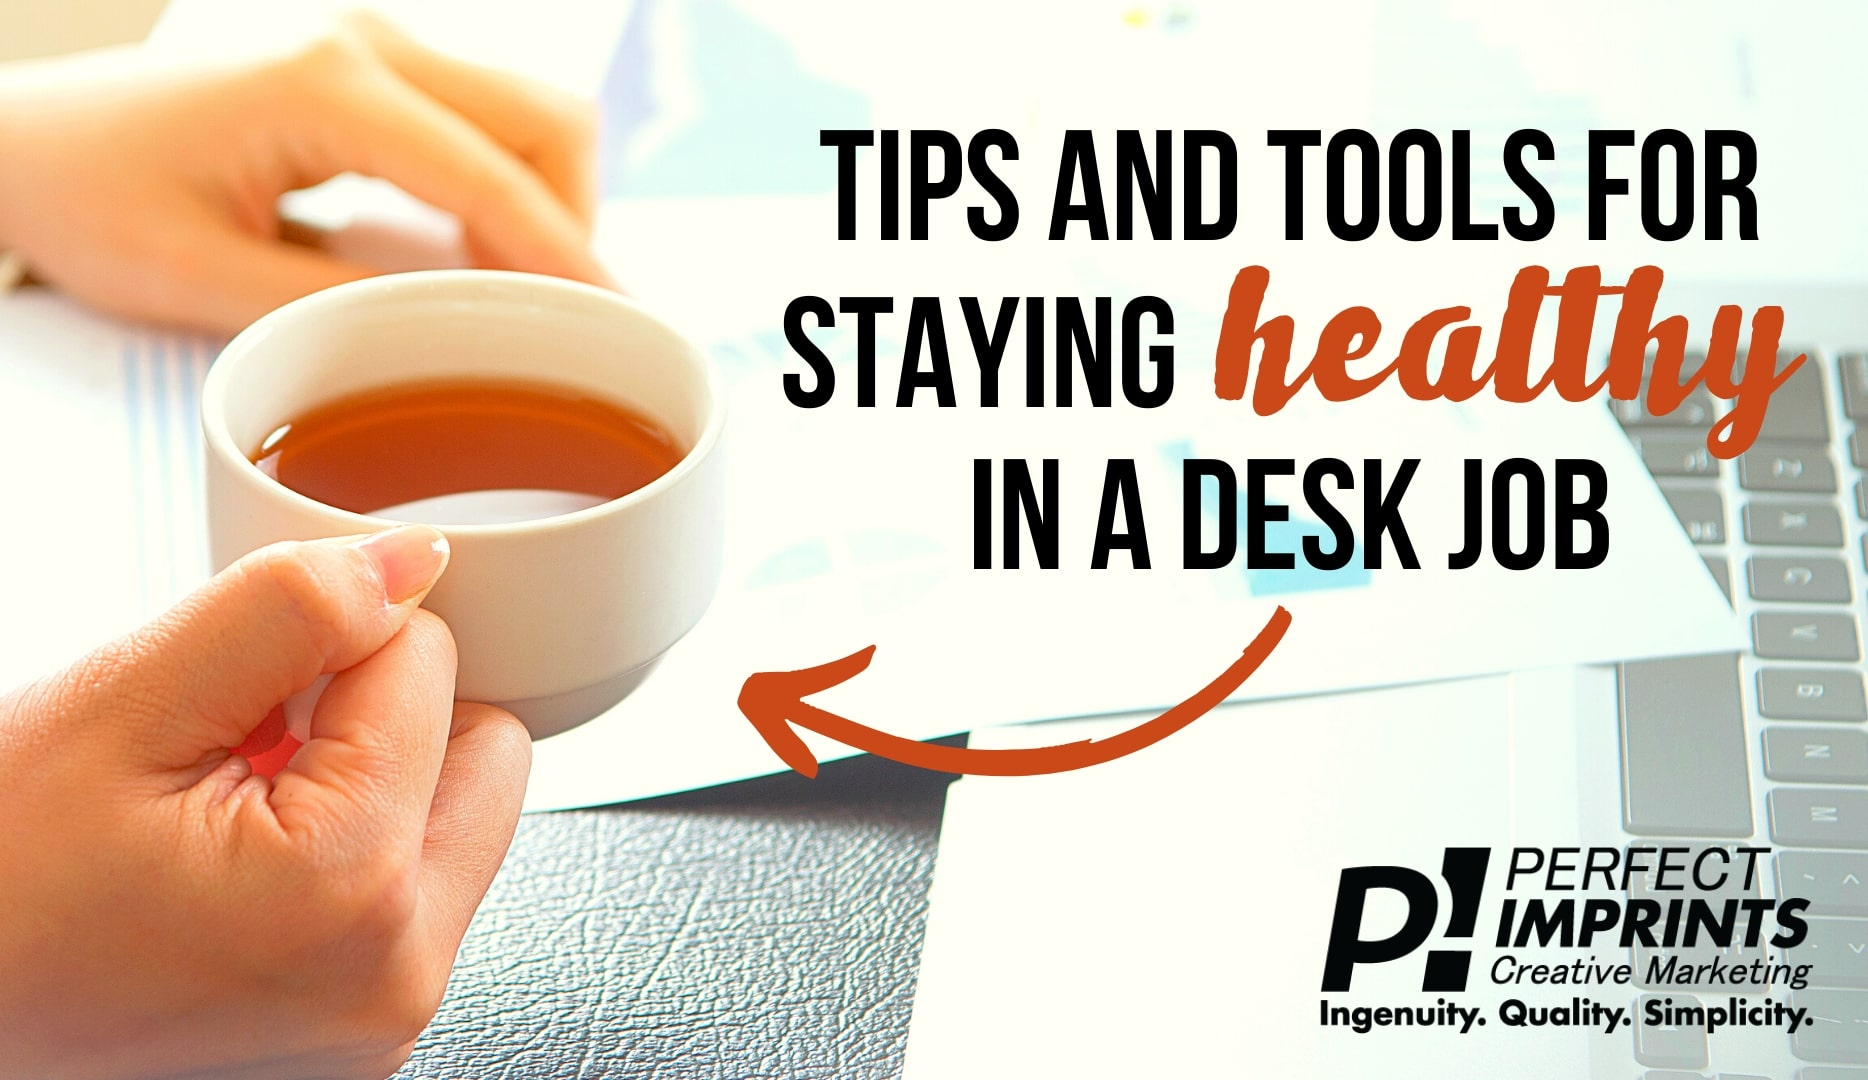 Tips and Tools for Staying Healthy at Work